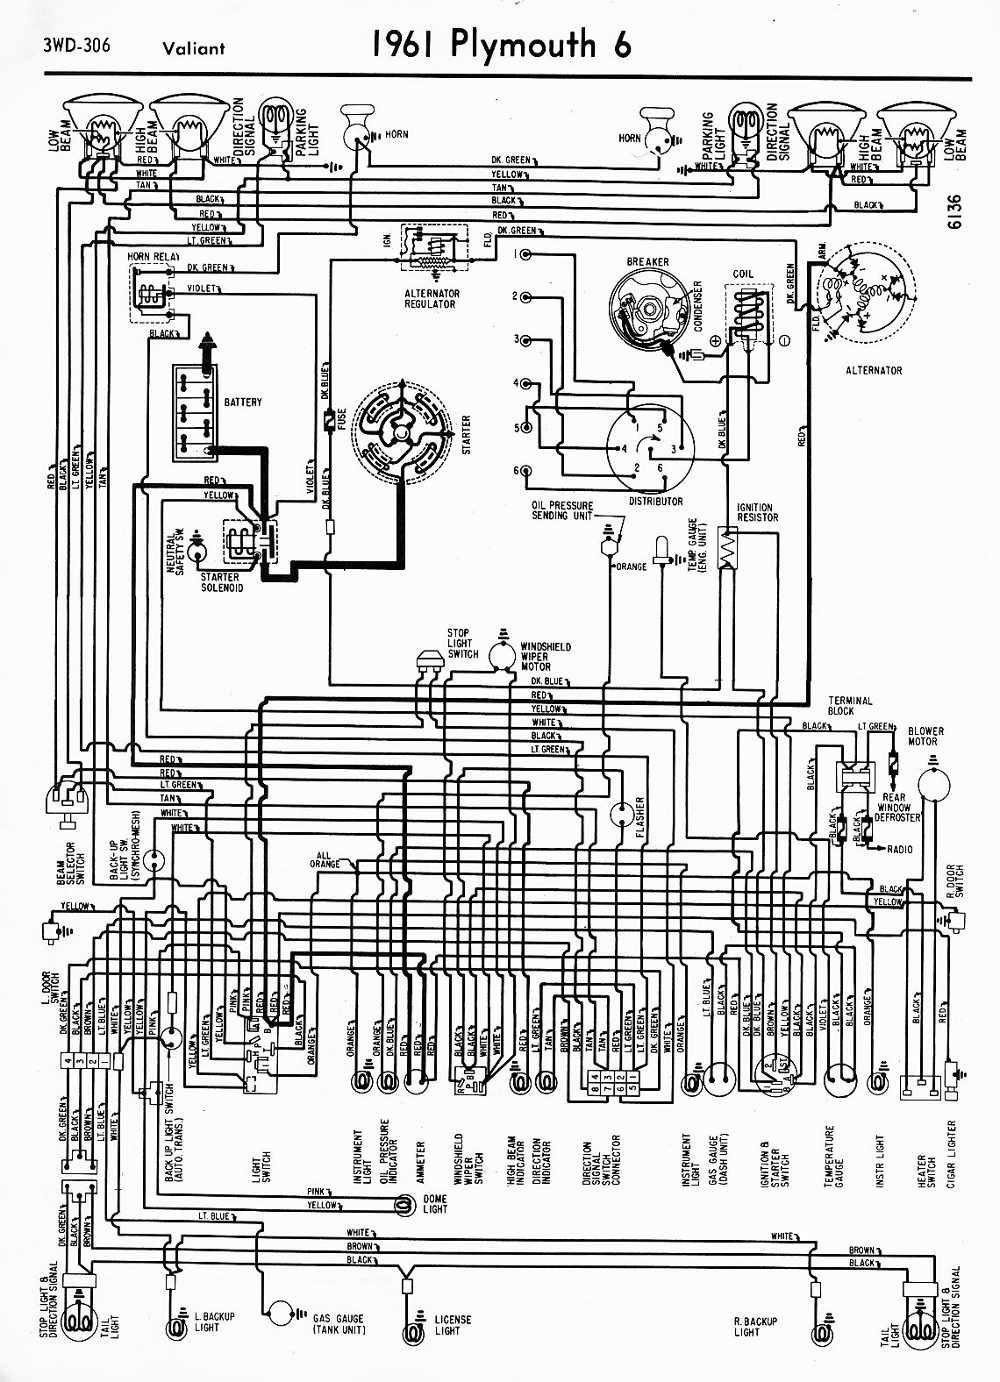 wiring diagrams of 1961 plymouth 6 valiant?t\\\=1508746019 1955 plymouth wiring diagram 1955 wiring diagrams instruction 1970 dodge coronet wiring diagram at metegol.co